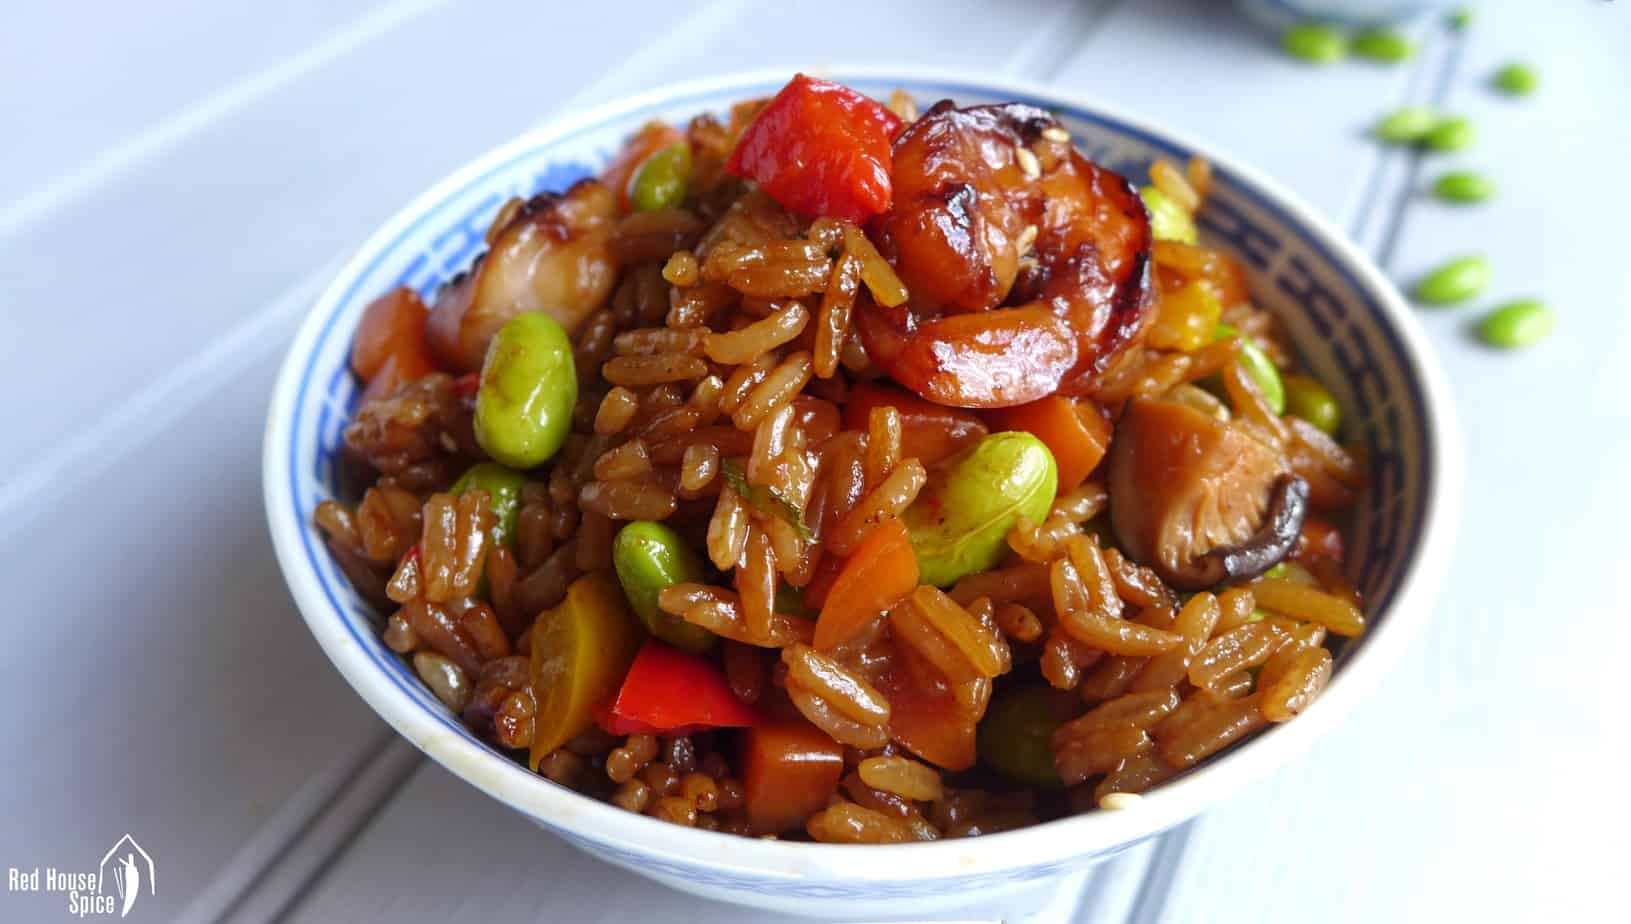 Chinese soy sauce rice pilaf